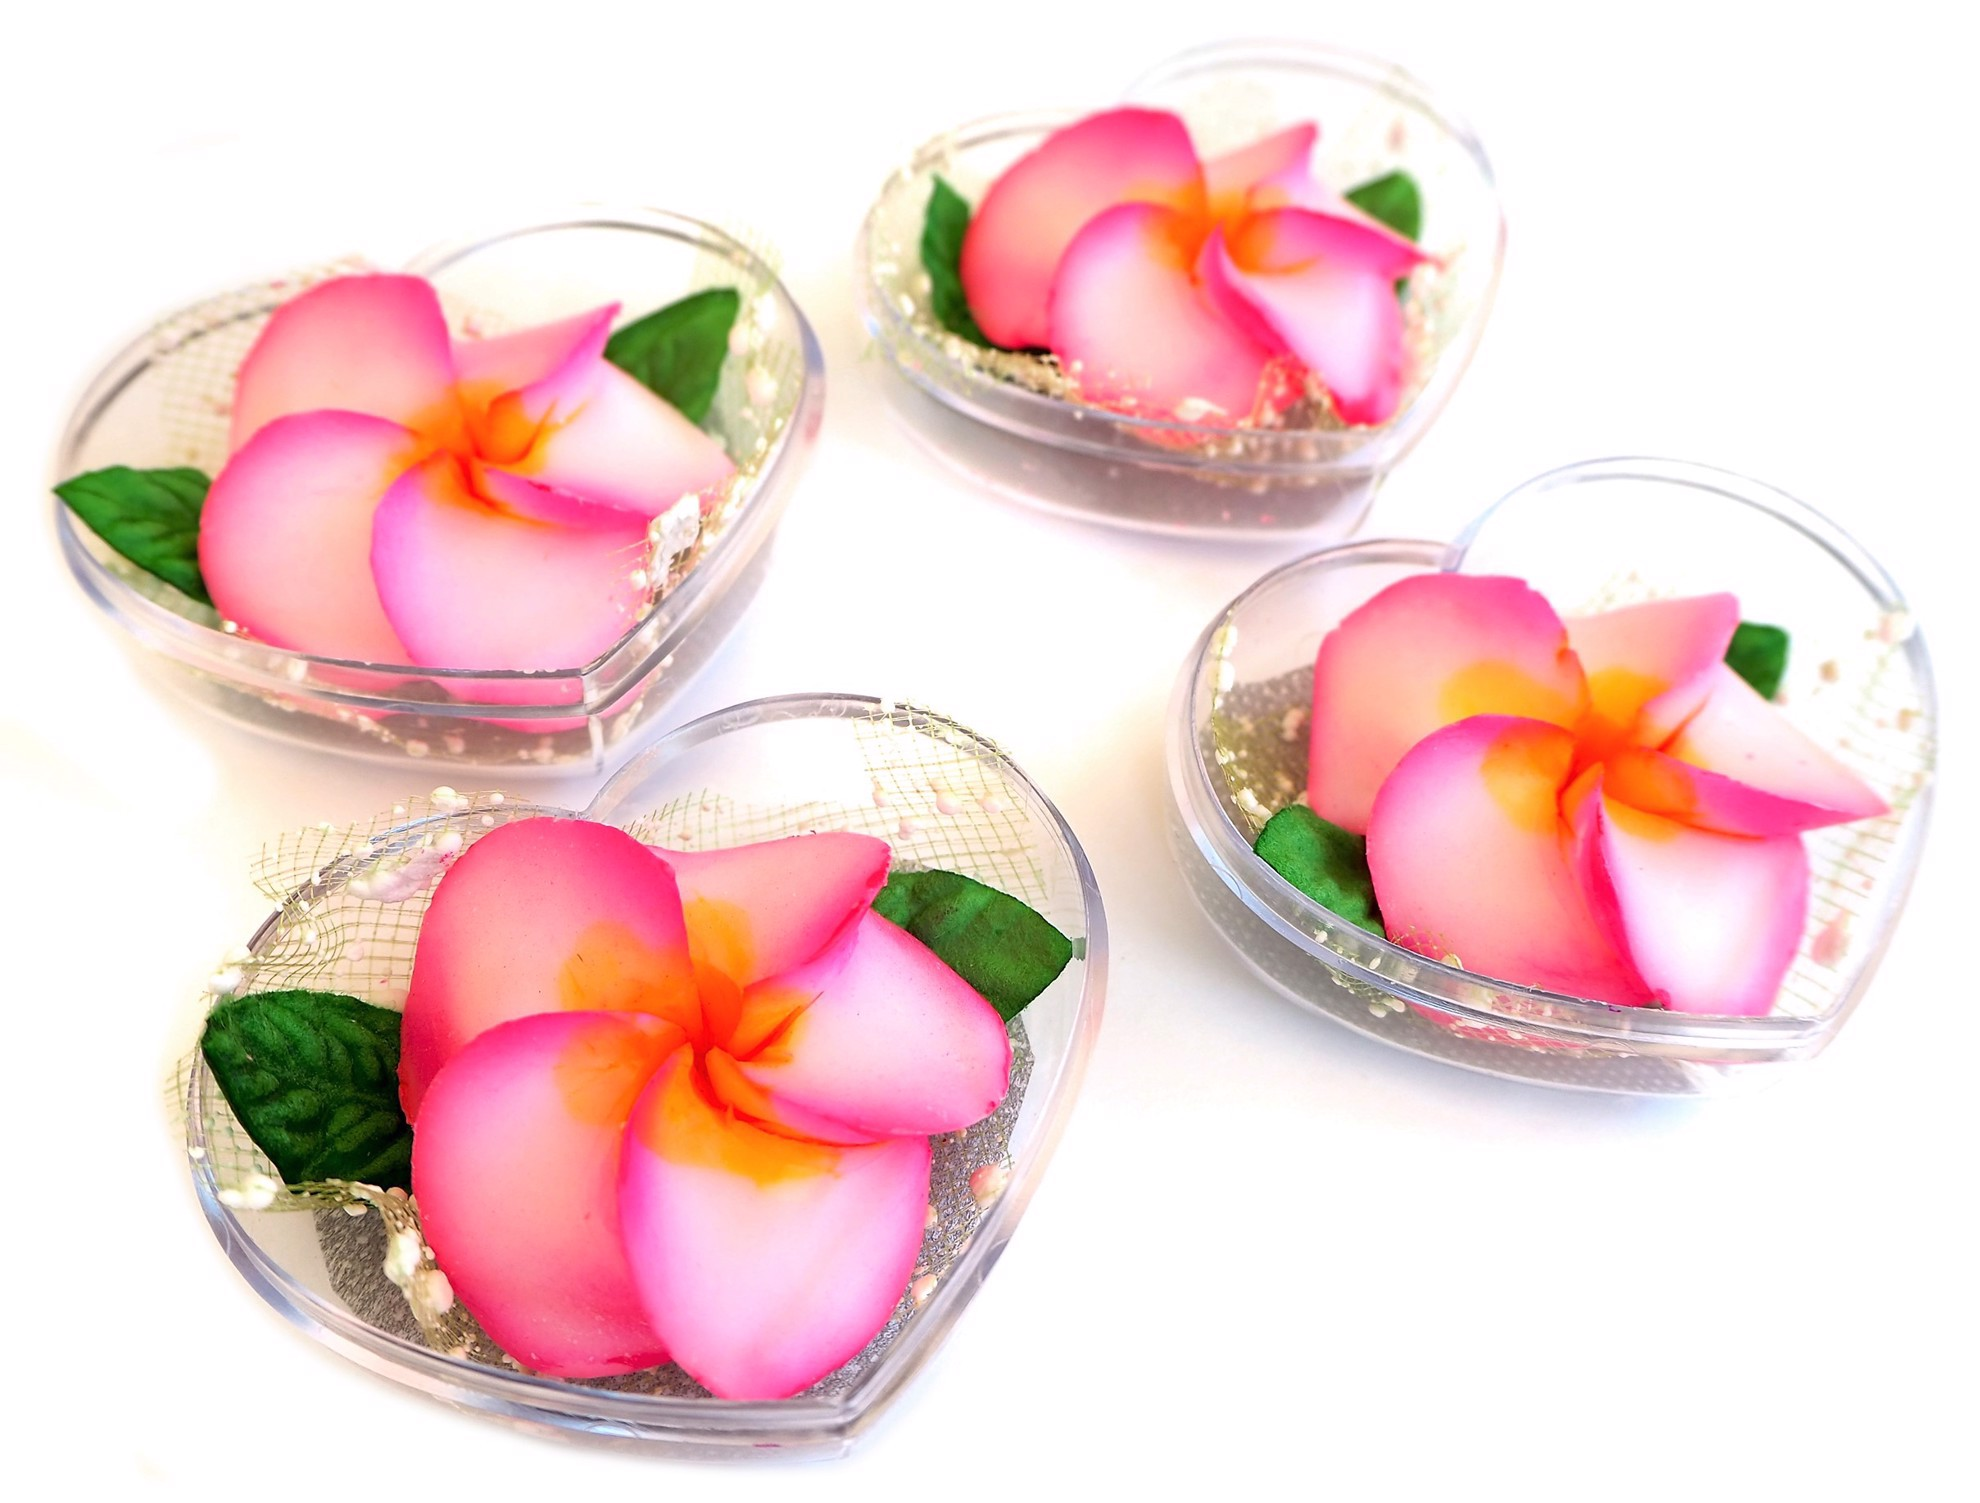 Picture of Plumeria White & Pink Flower Decorative Soaps (4) Hand Carved, Frangipani Aroma Essential Oil, Scented Soap Carving